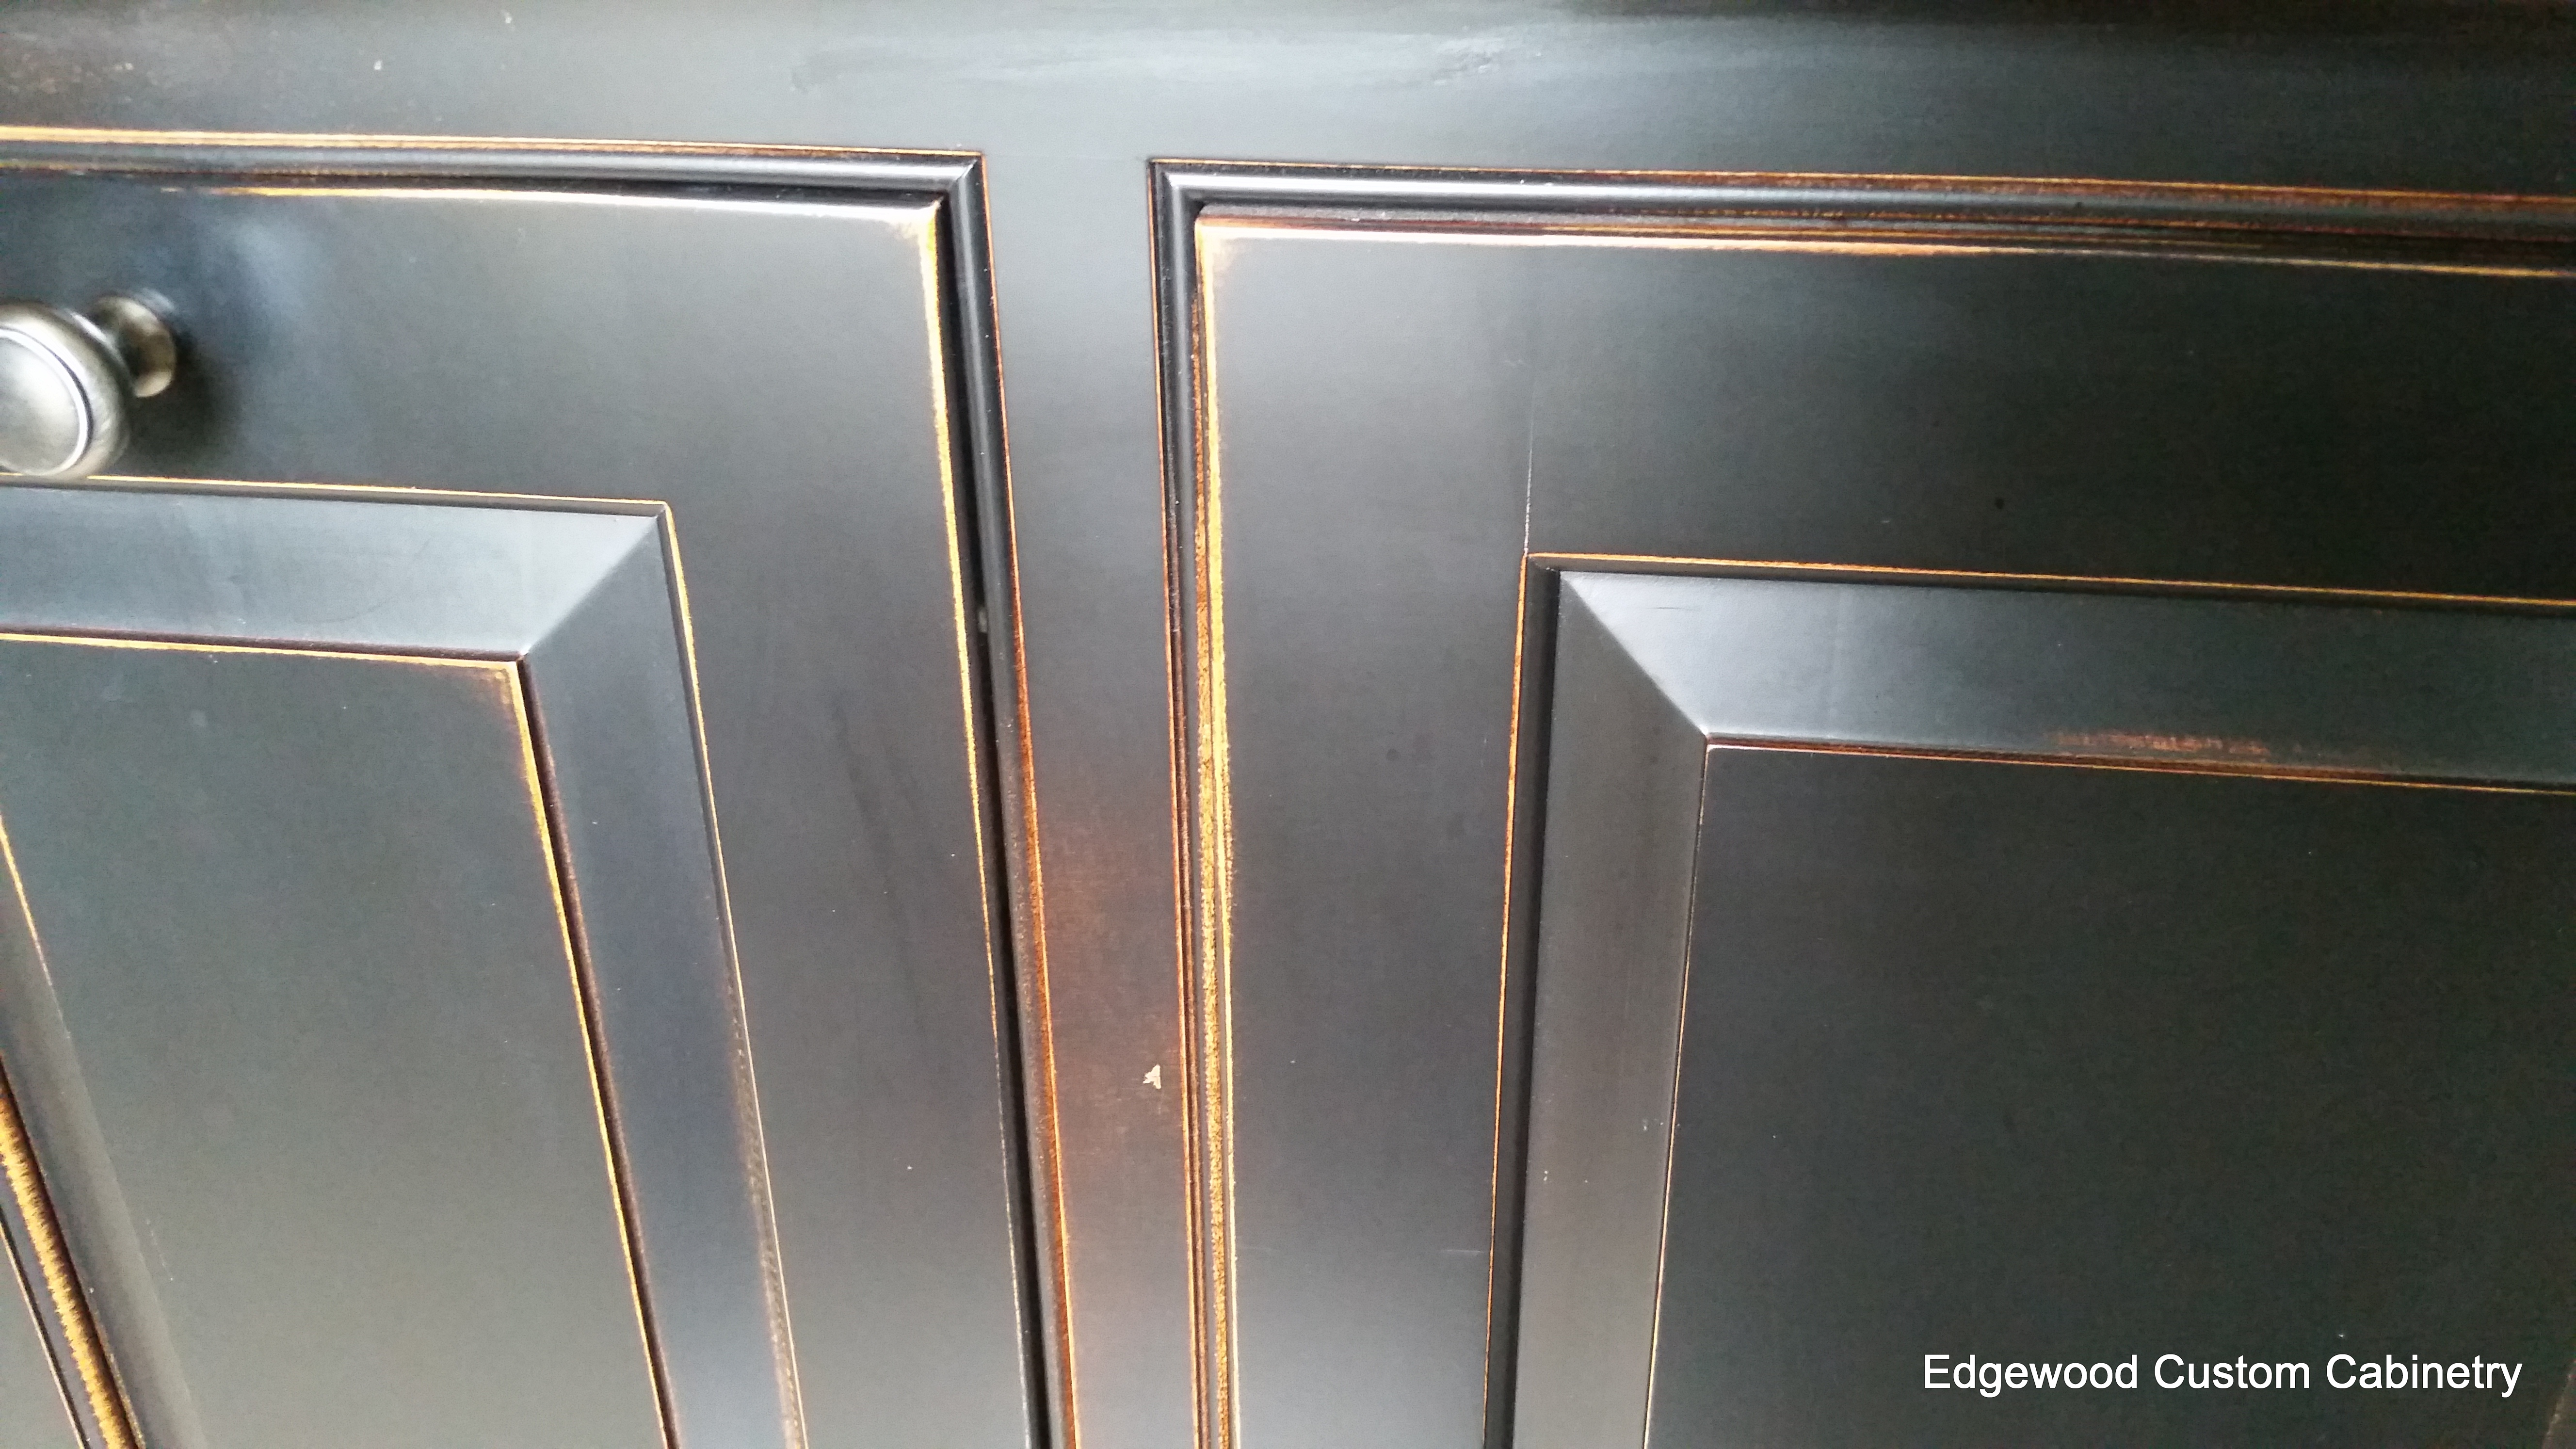 Inset vs. Overlay Cabinet Door Style | Edgewood Cabinetry